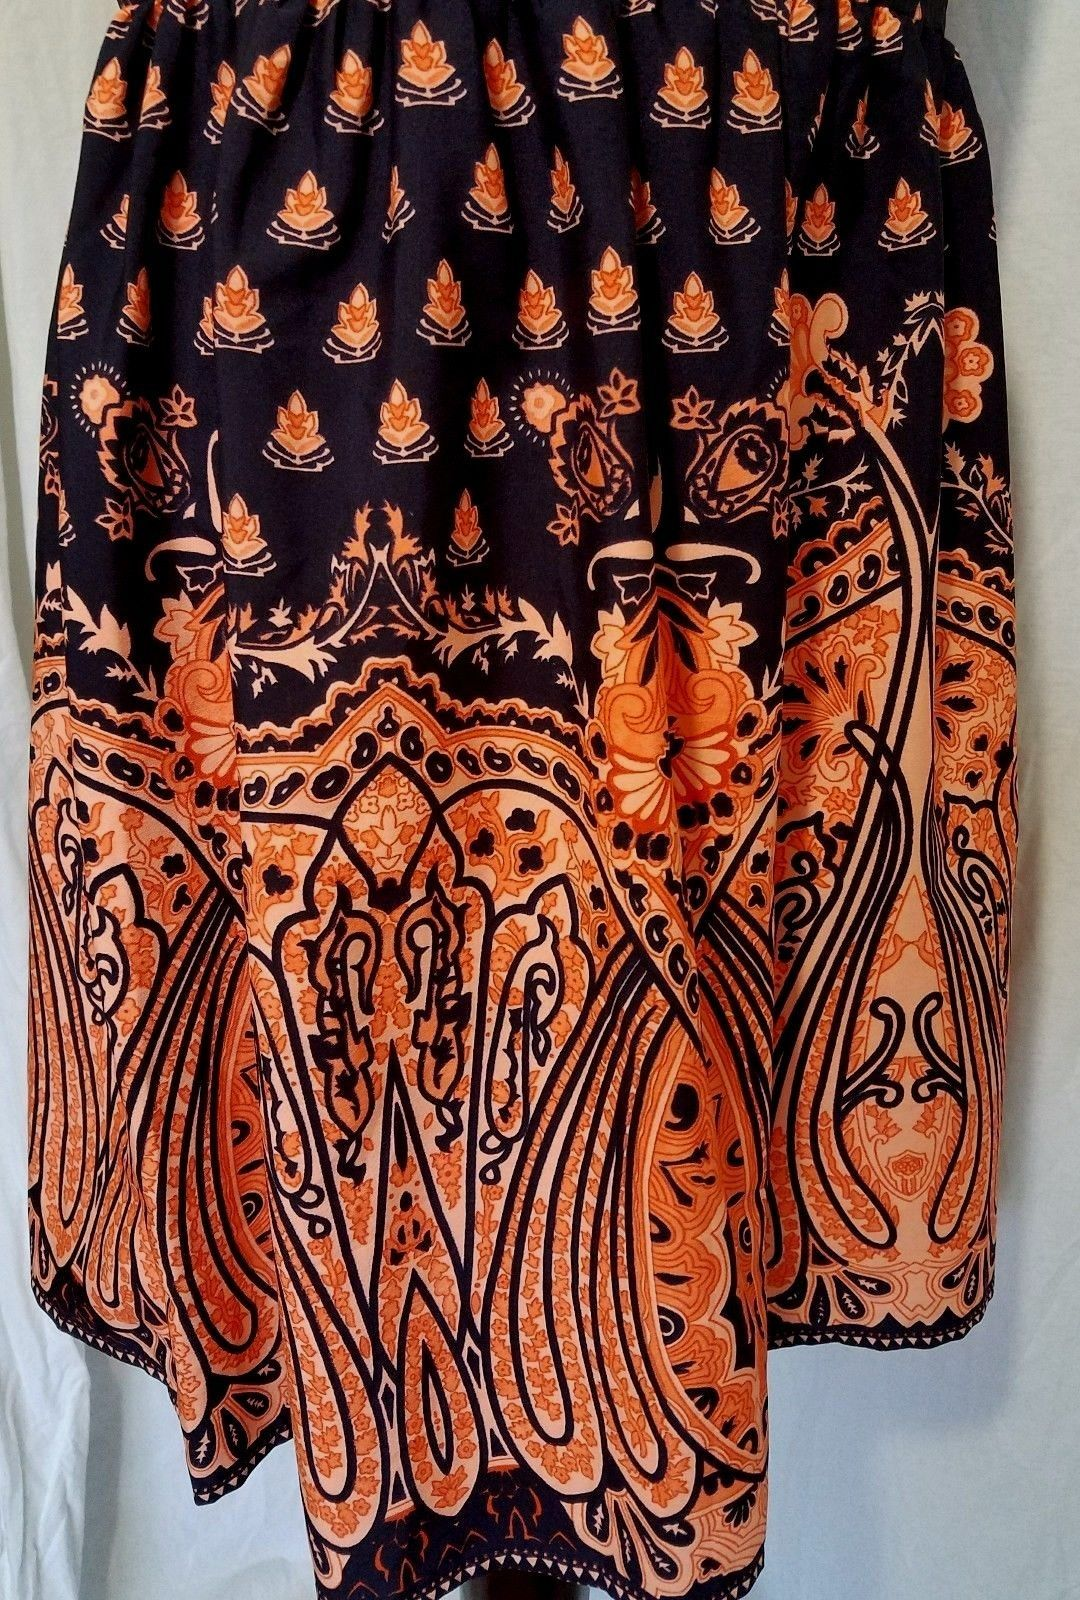 Pinky Navy Blue Dress Orange Lotus Flowers Paisley Sleeveless Size L